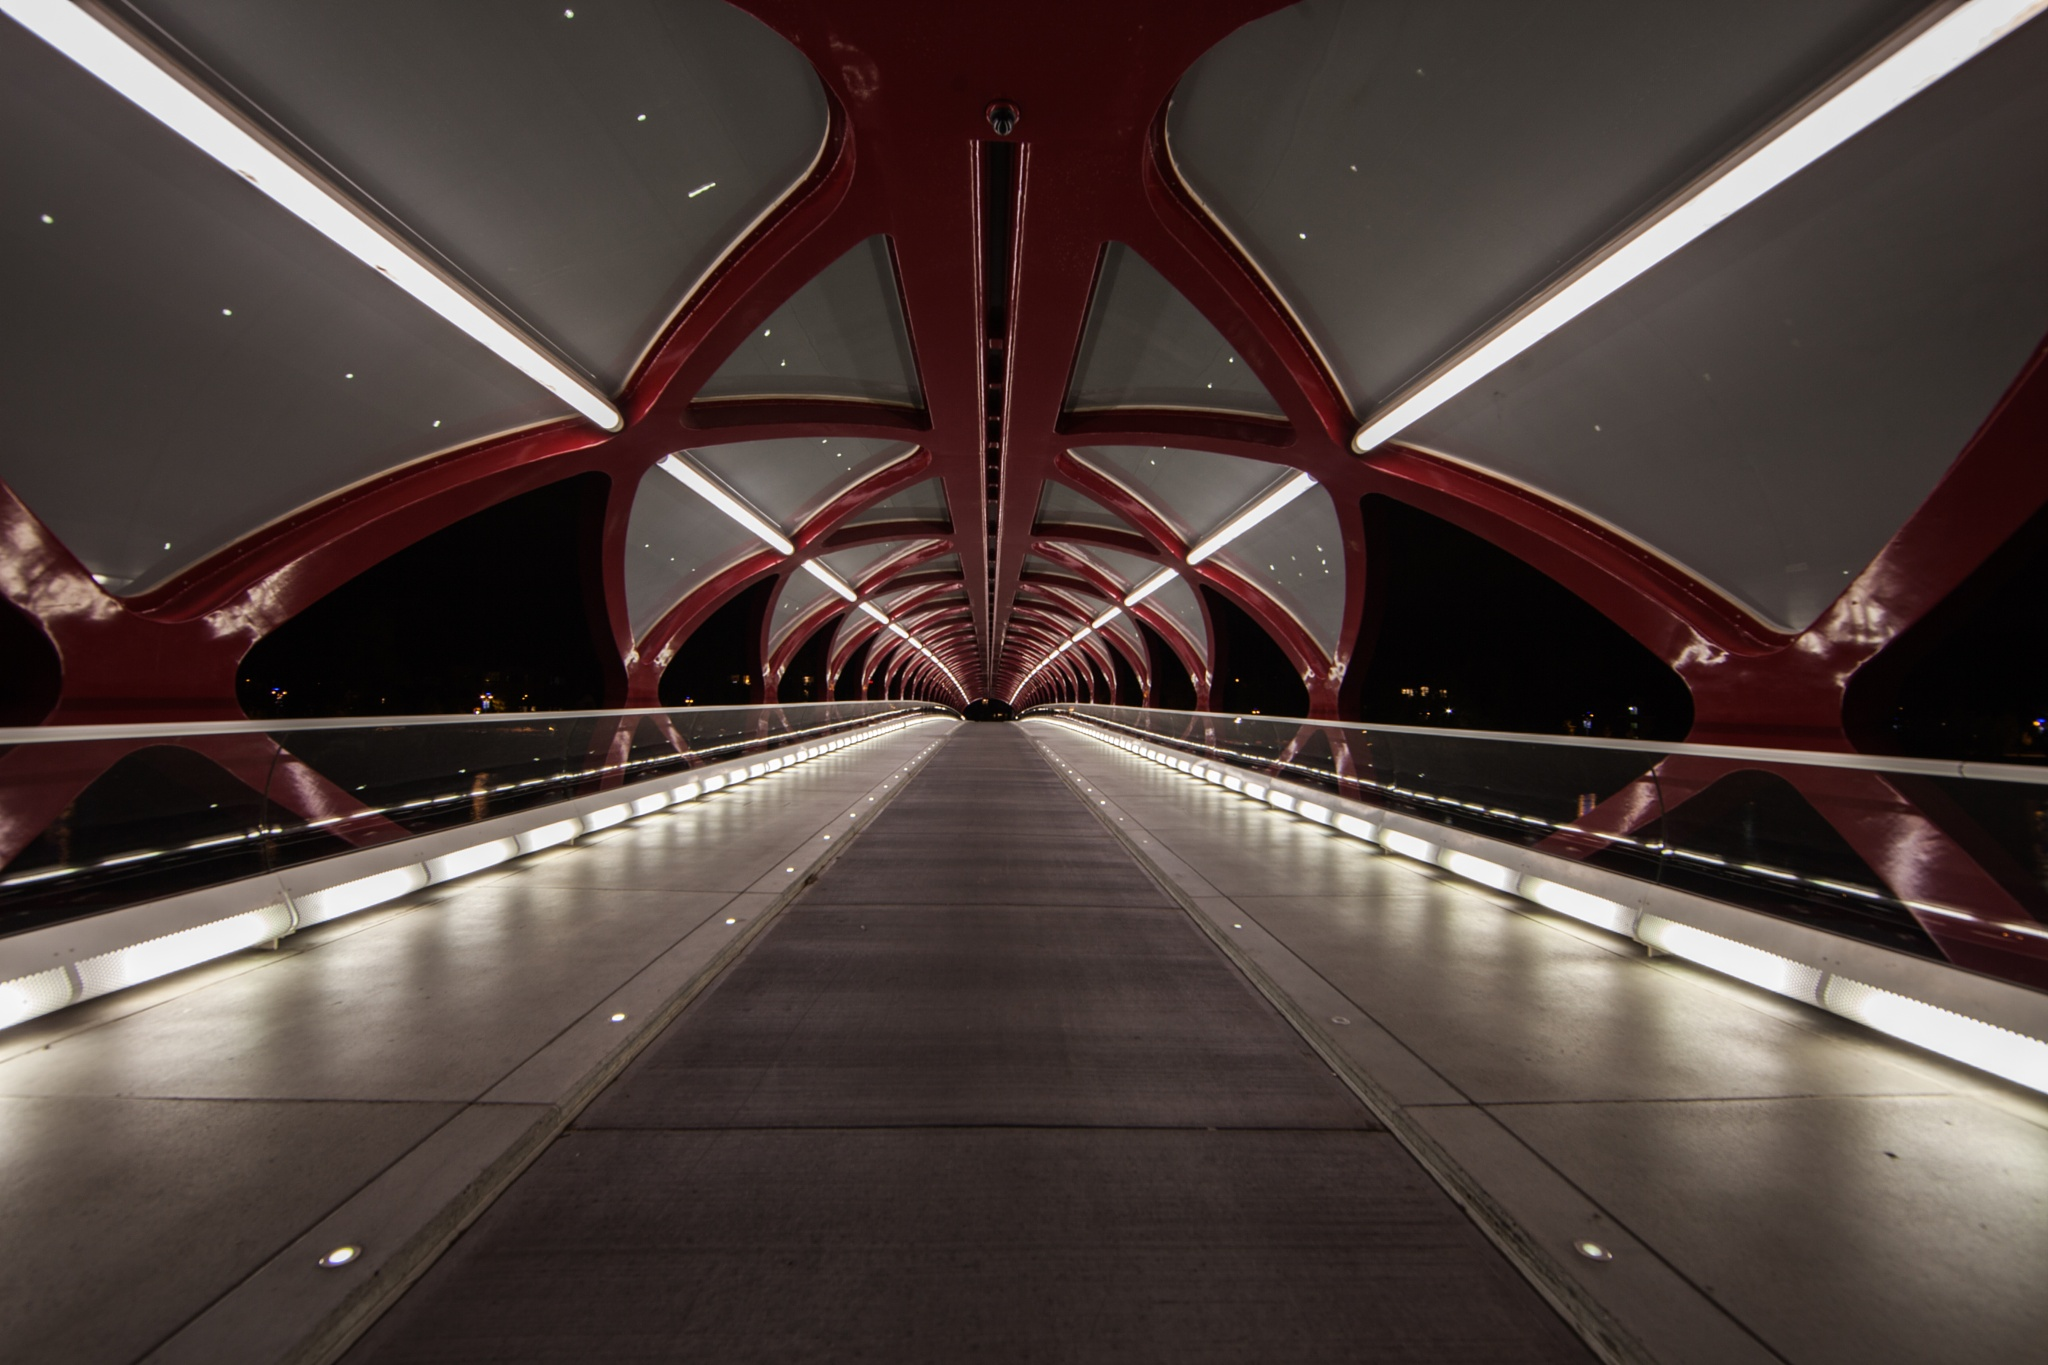 The Calgary Peace Bridge by John Watson